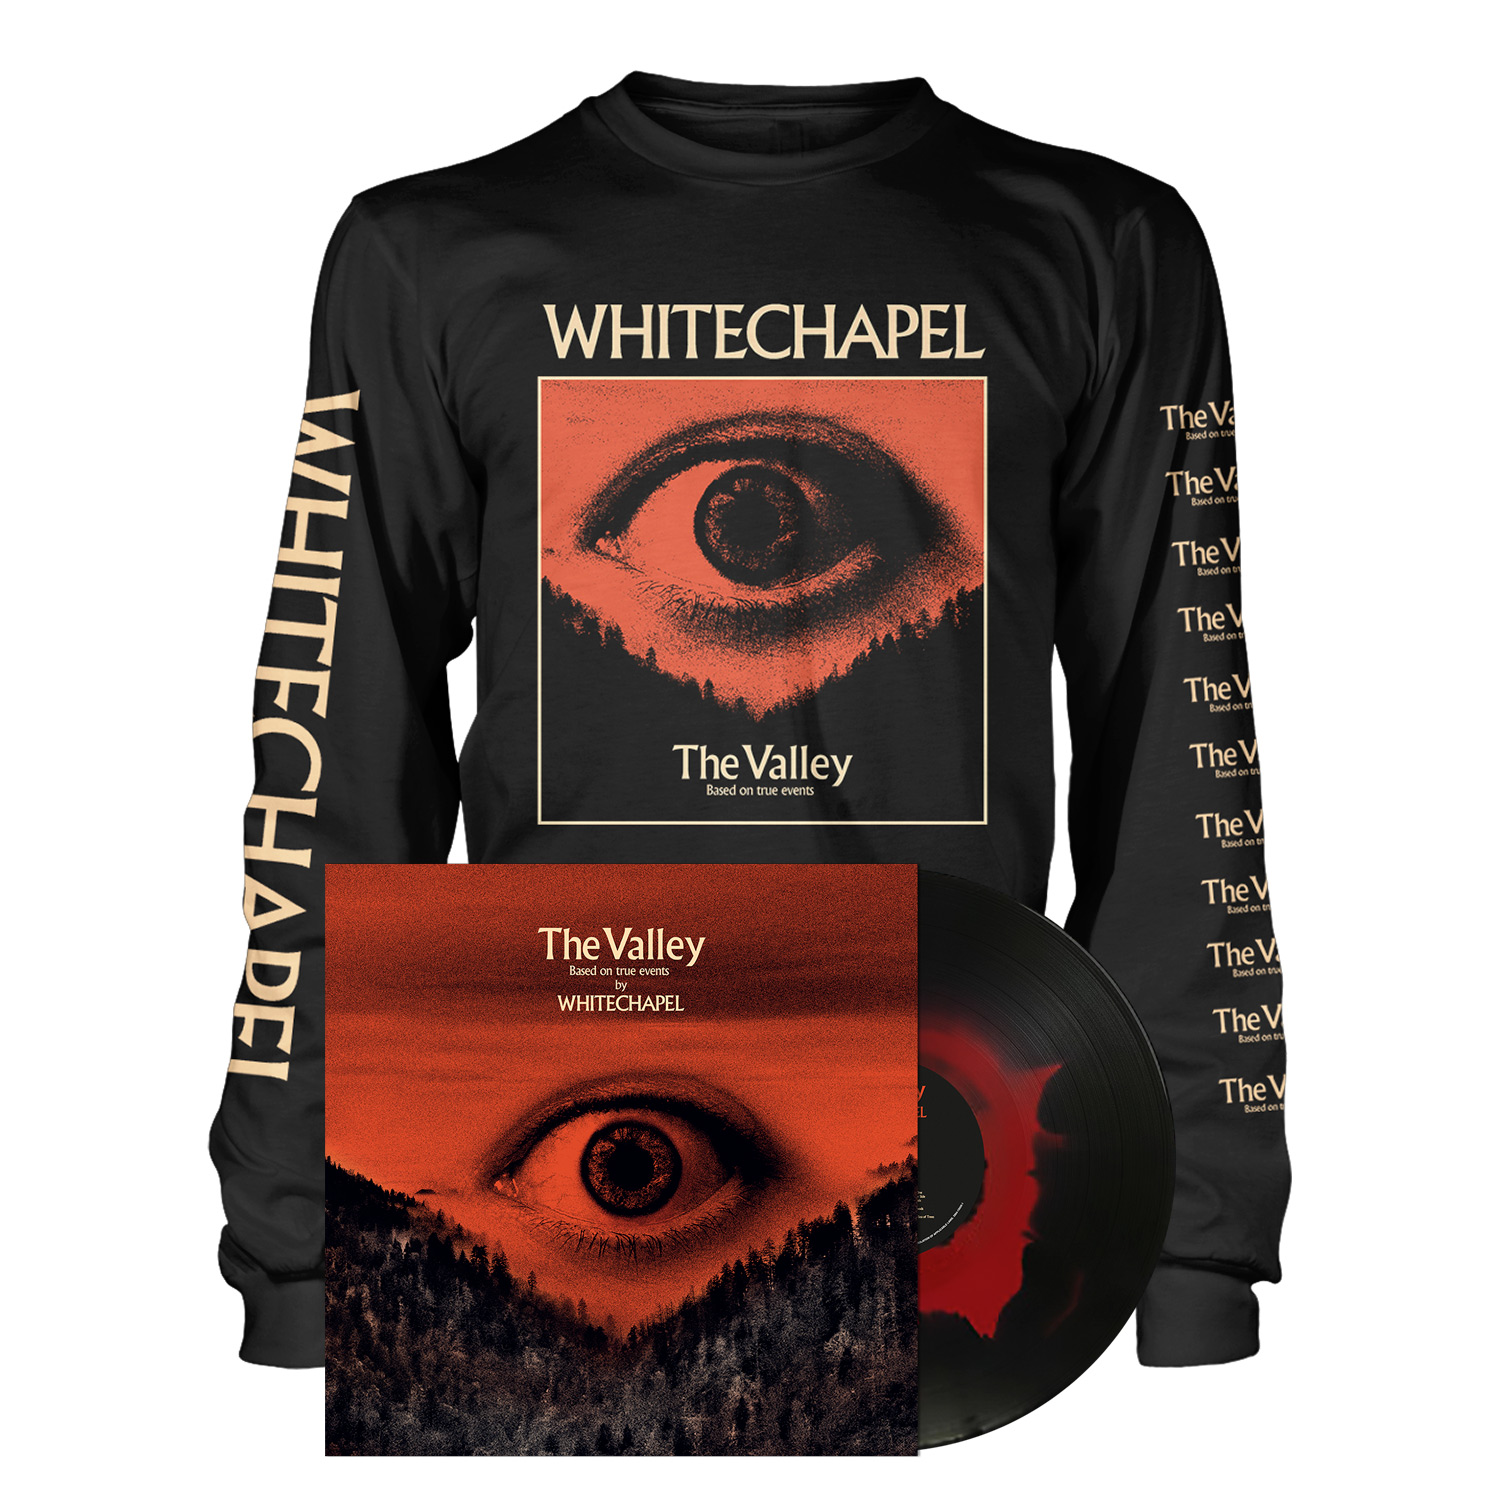 The Valley - LP Haze Bundle - Longsleeve